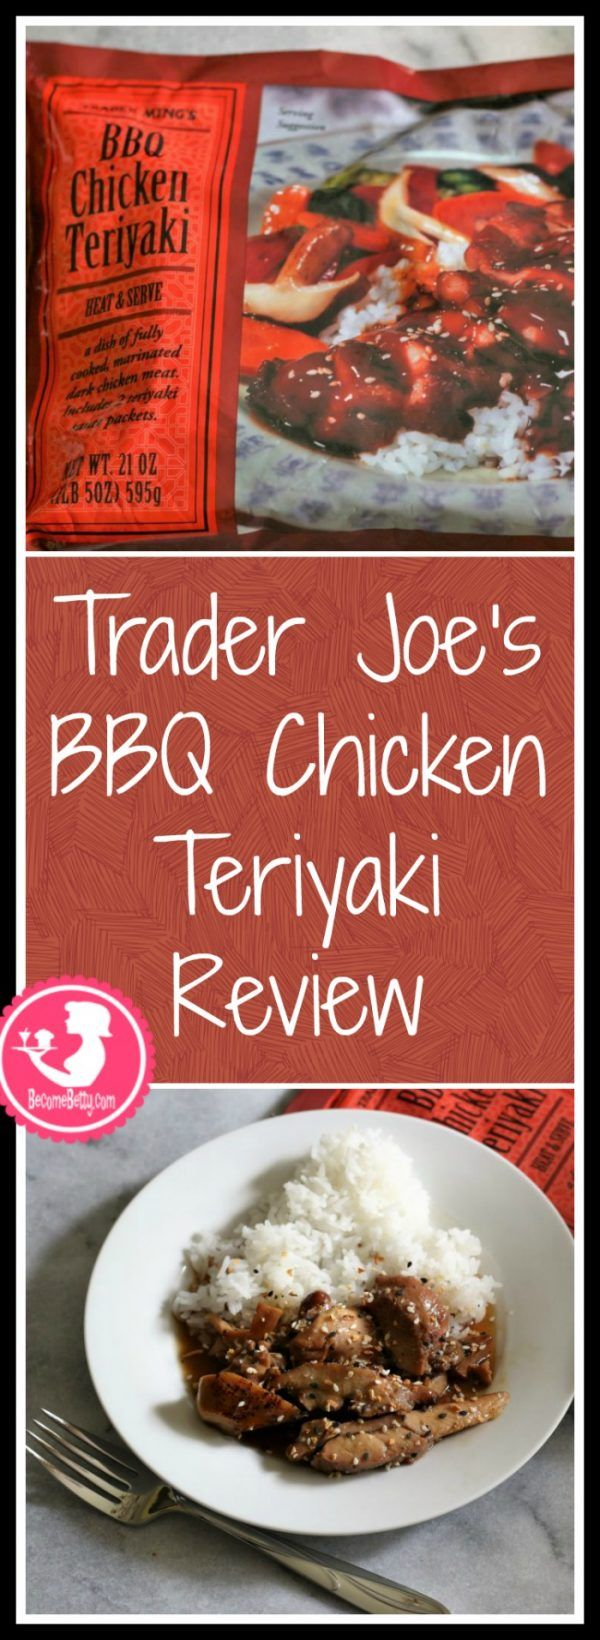 Trader Joes BBQ Chicken Teriyaki review. Want to know if this is something worth buying from Trader Joe's? All pins link to BecomeBetty.com where you can find reviews, pictures, thoughts, calorie counts, nutritional information, how to prepare, allergy information, and how to prepare each product.